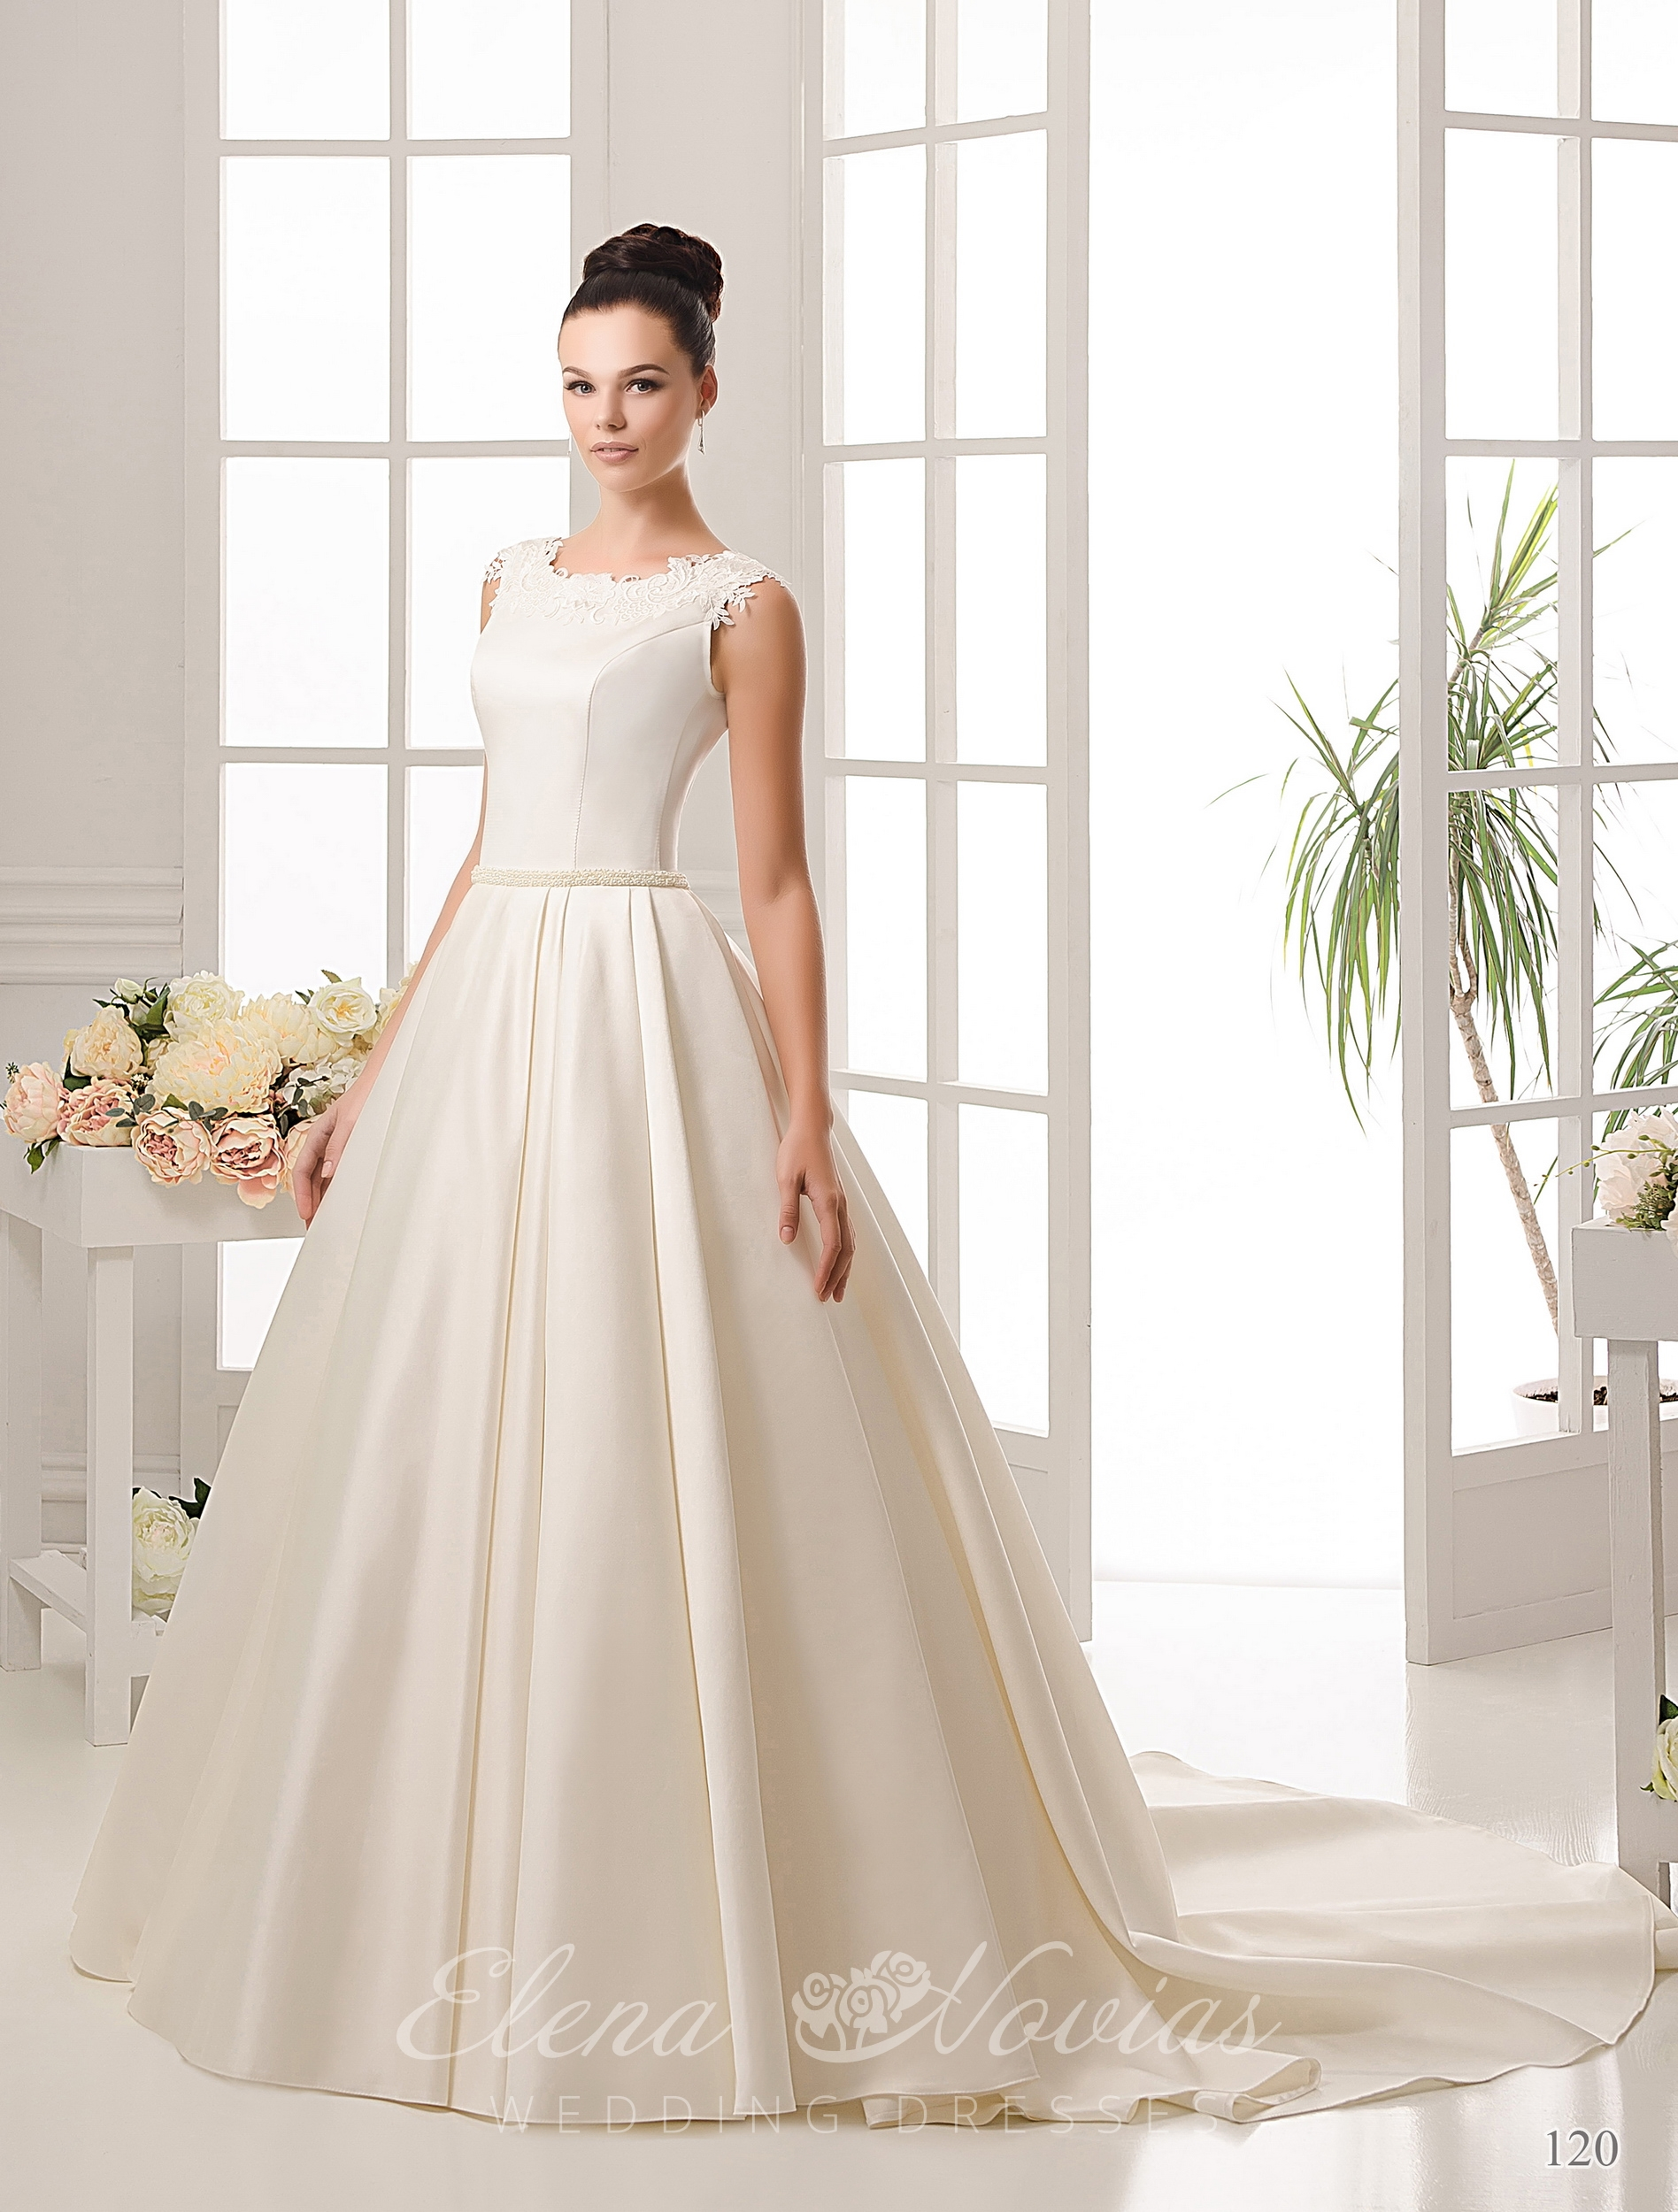 Wedding dress wholesale 120